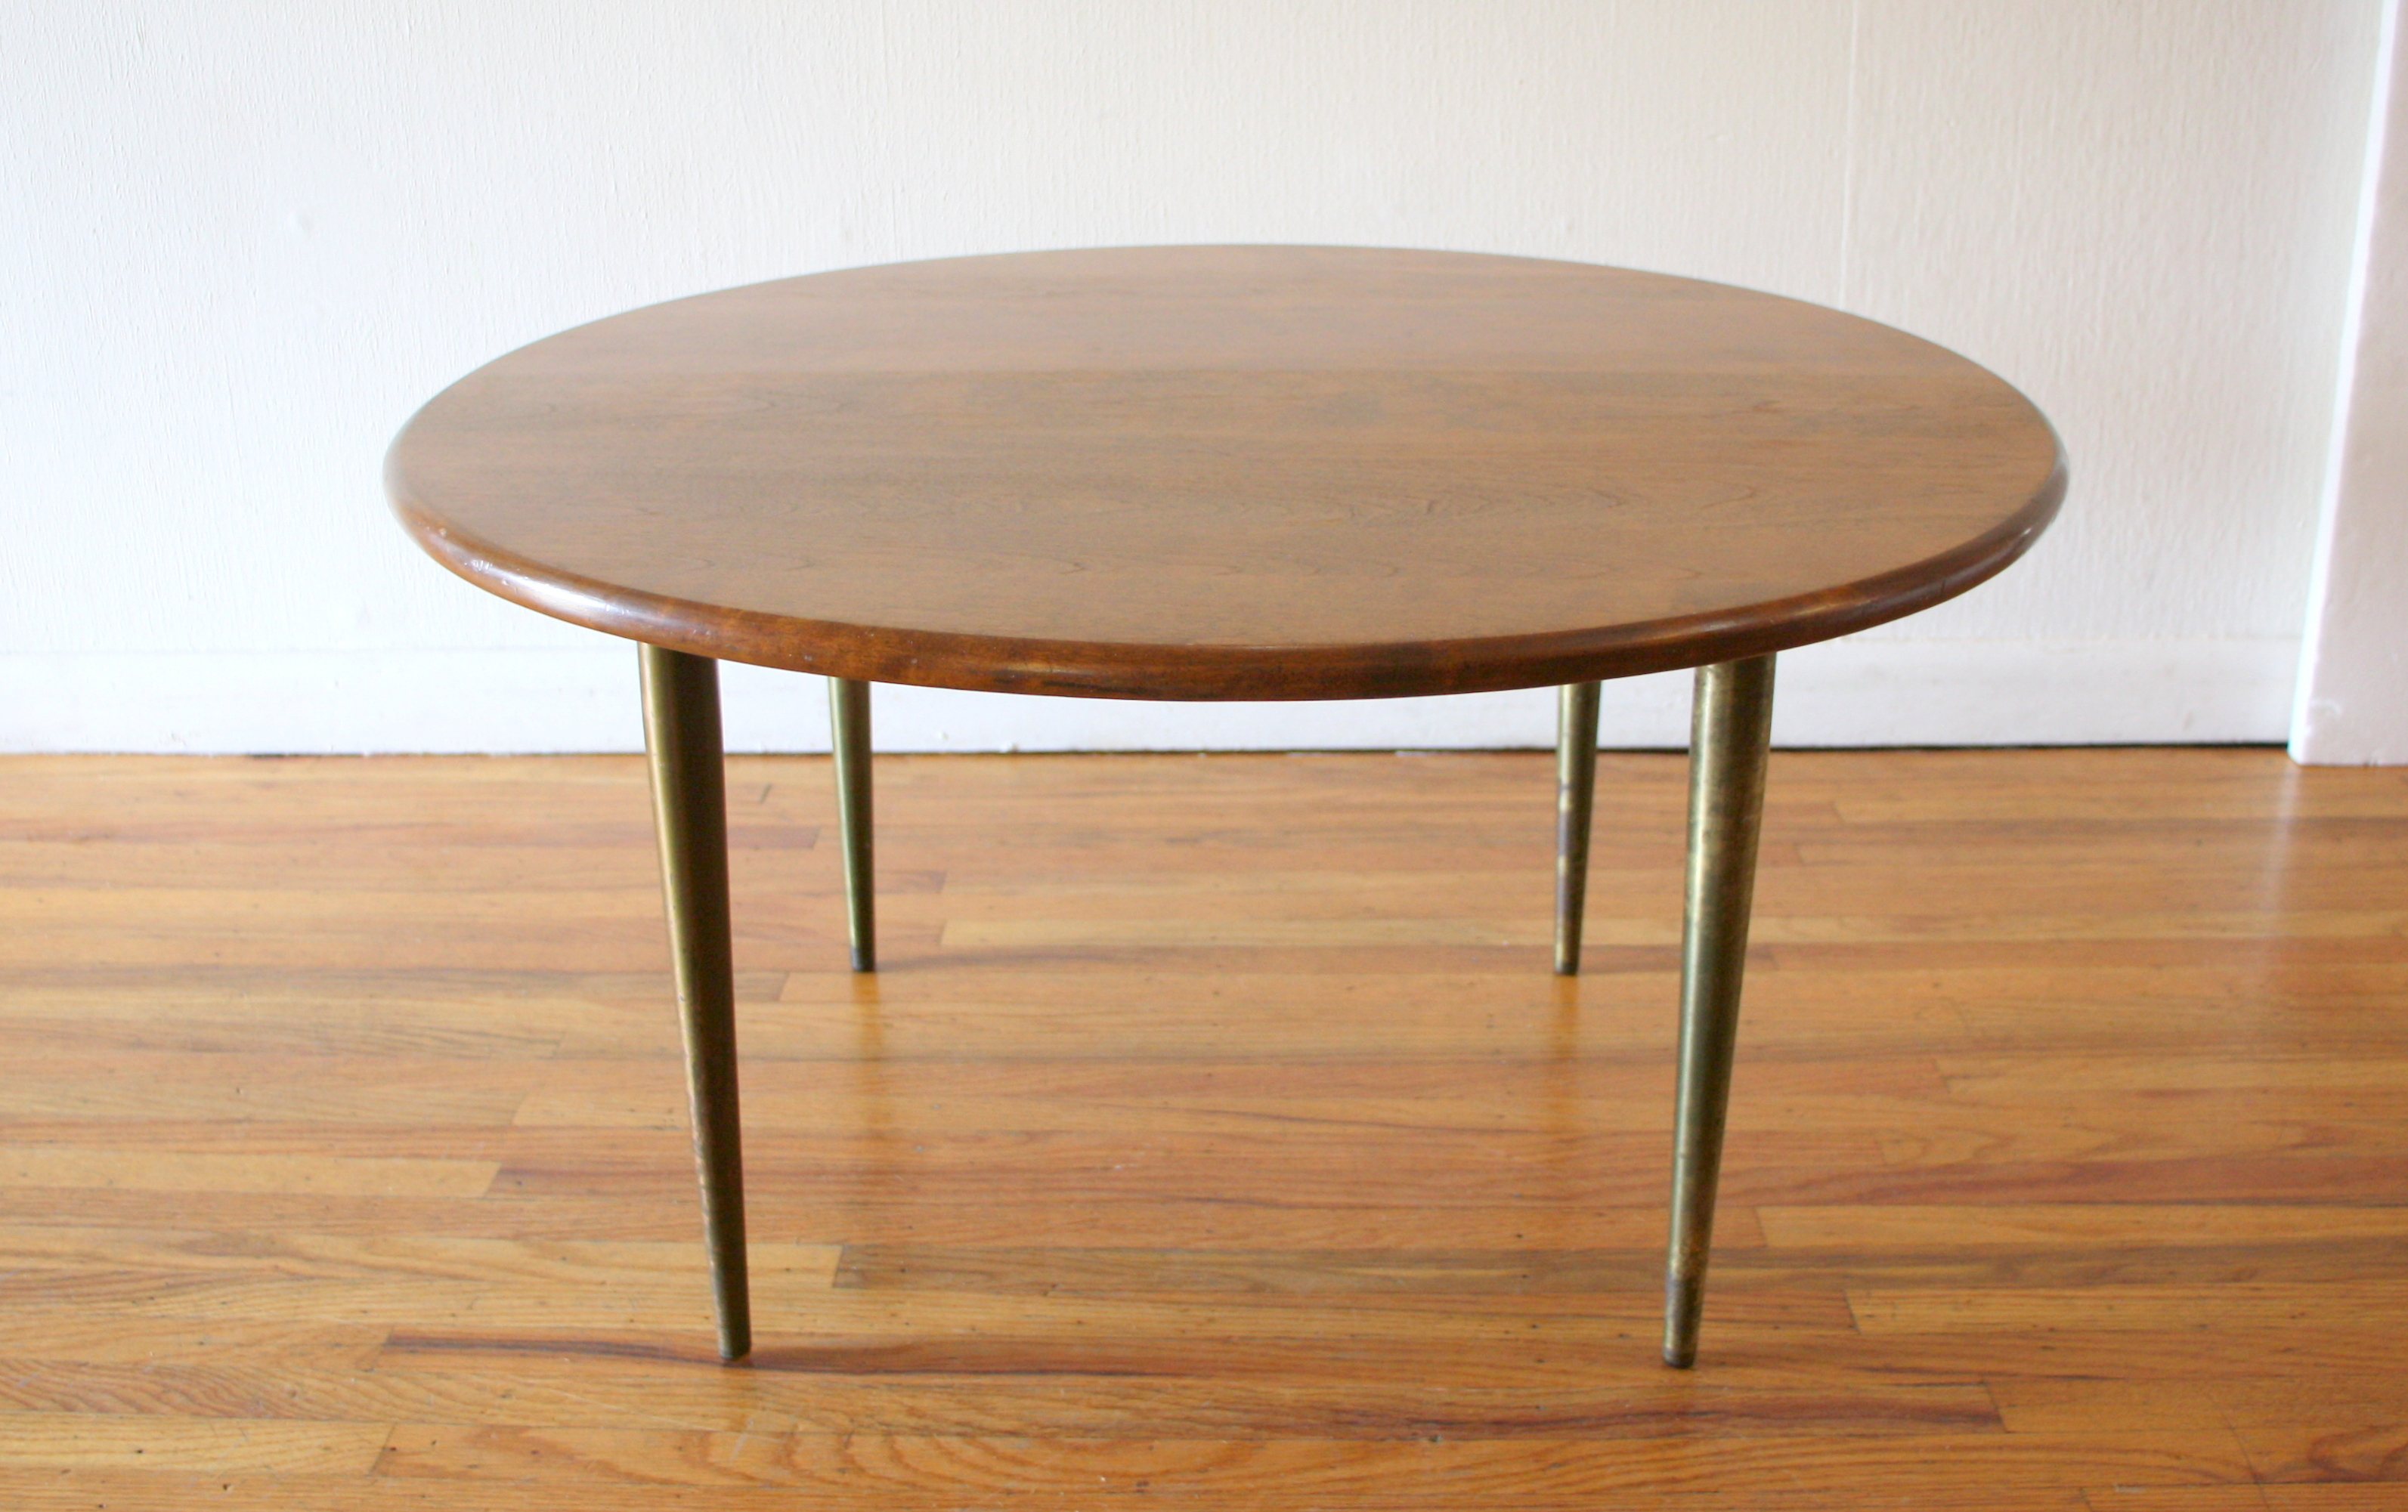 Conant Ball round coffee table 2